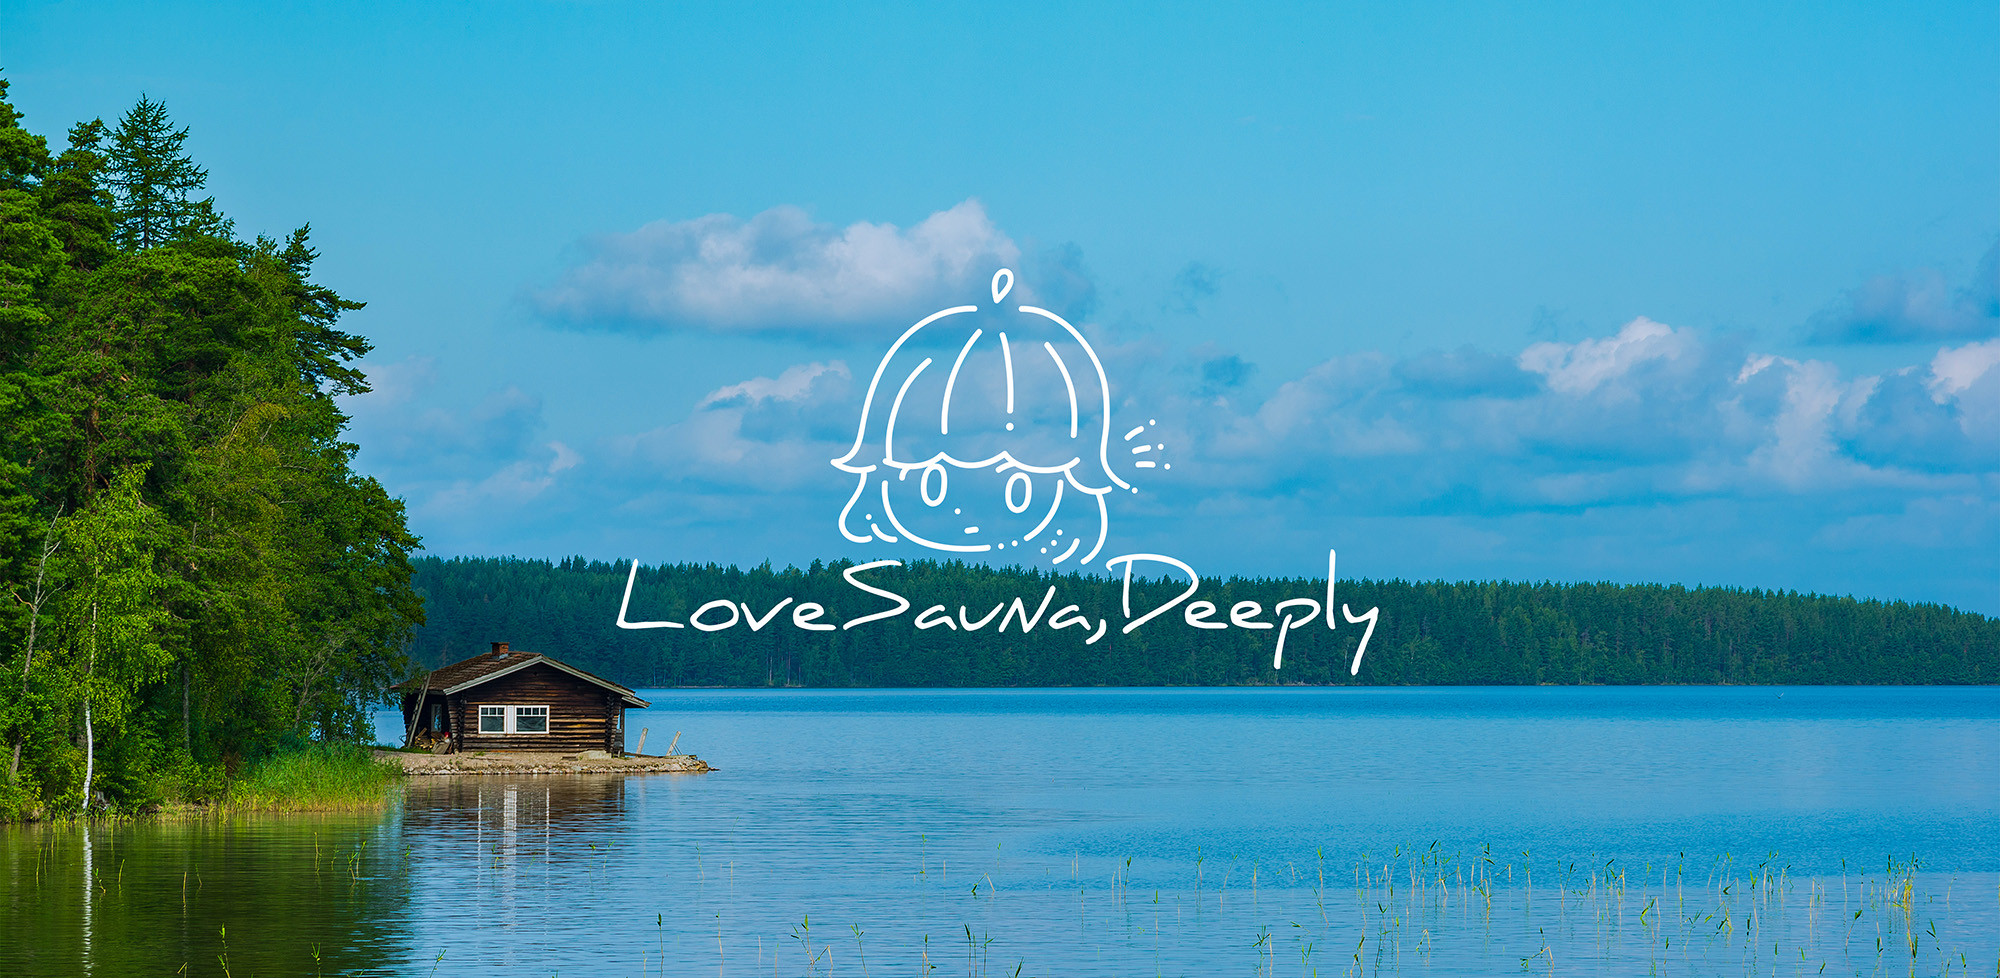 Love Sauna,Deeply